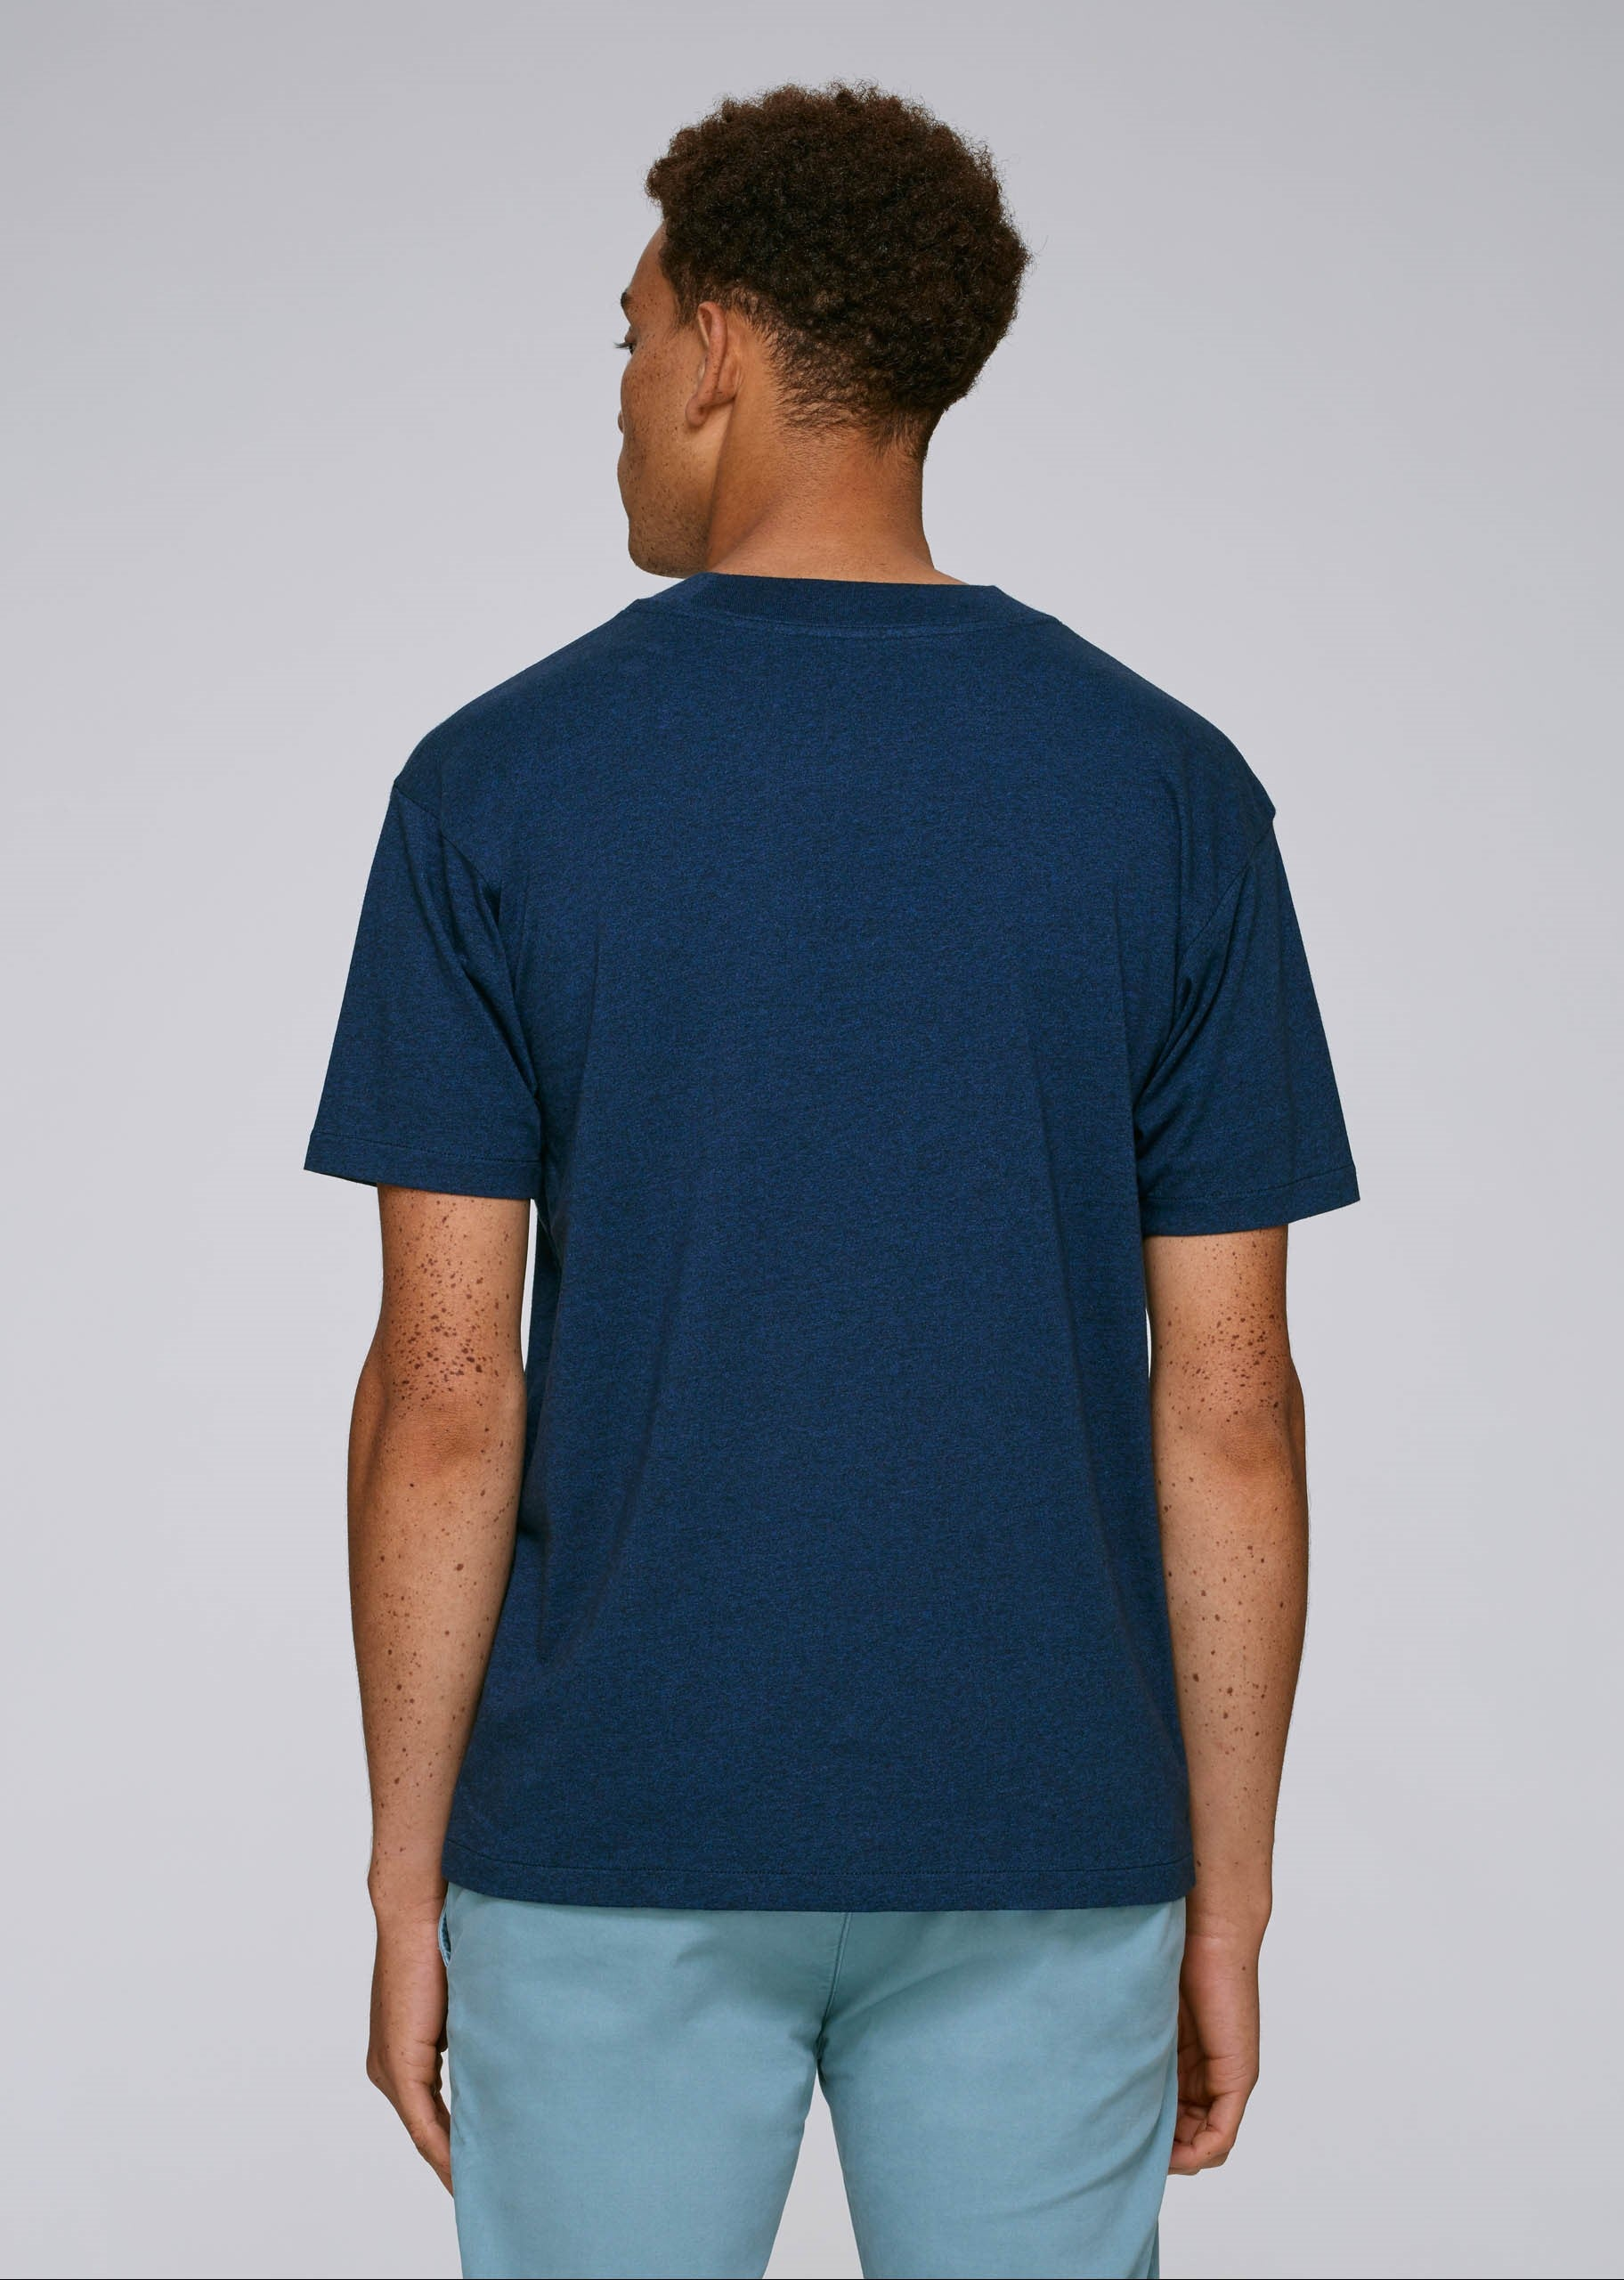 He Trims - Black Heather Blue-T-Shirt-Sancho's Dress